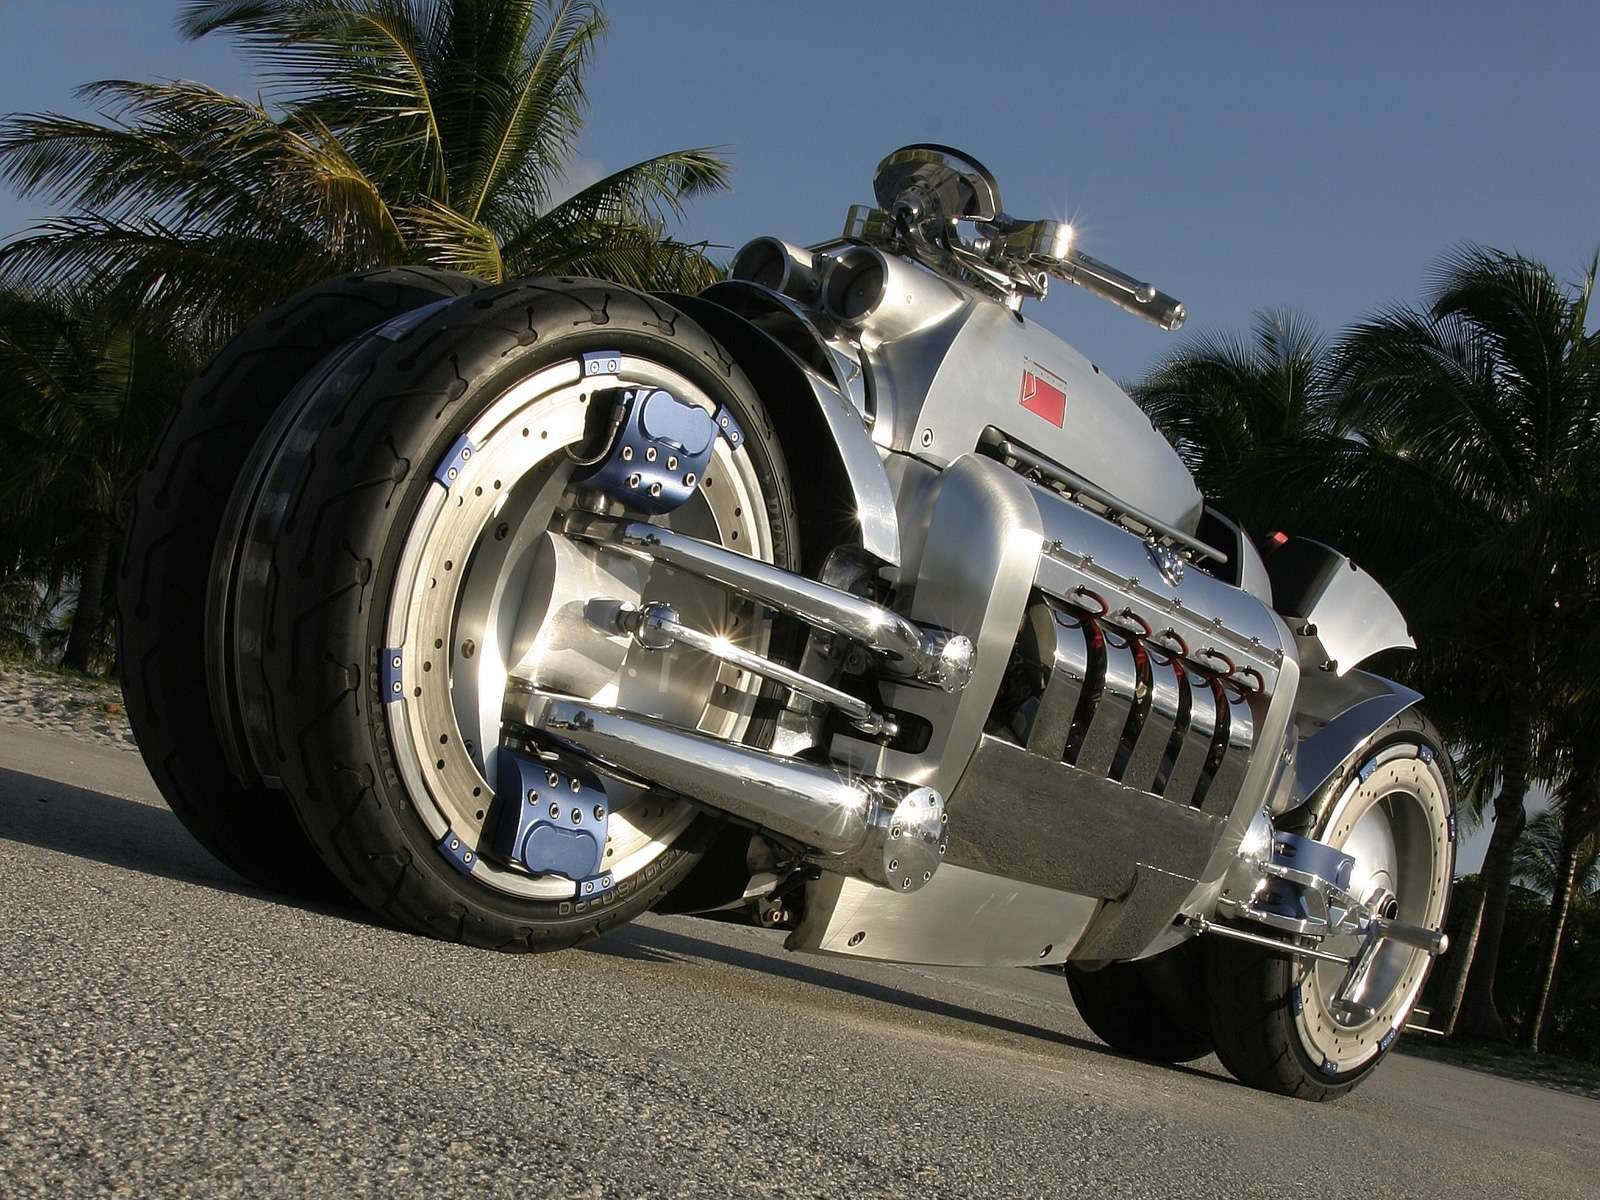 Superbikes And Super : Dodge Tomahawk on hunting tomahawk, jeep tomahawk, historical tomahawk, braves tomahawk, chrysler tomahawk, indian tomahawk, honda tomahawk, sweet sioux tomahawk, war tomahawk, diy tomahawk, military tomahawk, from black ops tomahawk, mopar tomahawk, tactical tomahawk, cartoon tomahawk, cold steel tomahawk, best tomahawk, modern tomahawk, ford tomahawk, native american tomahawk,